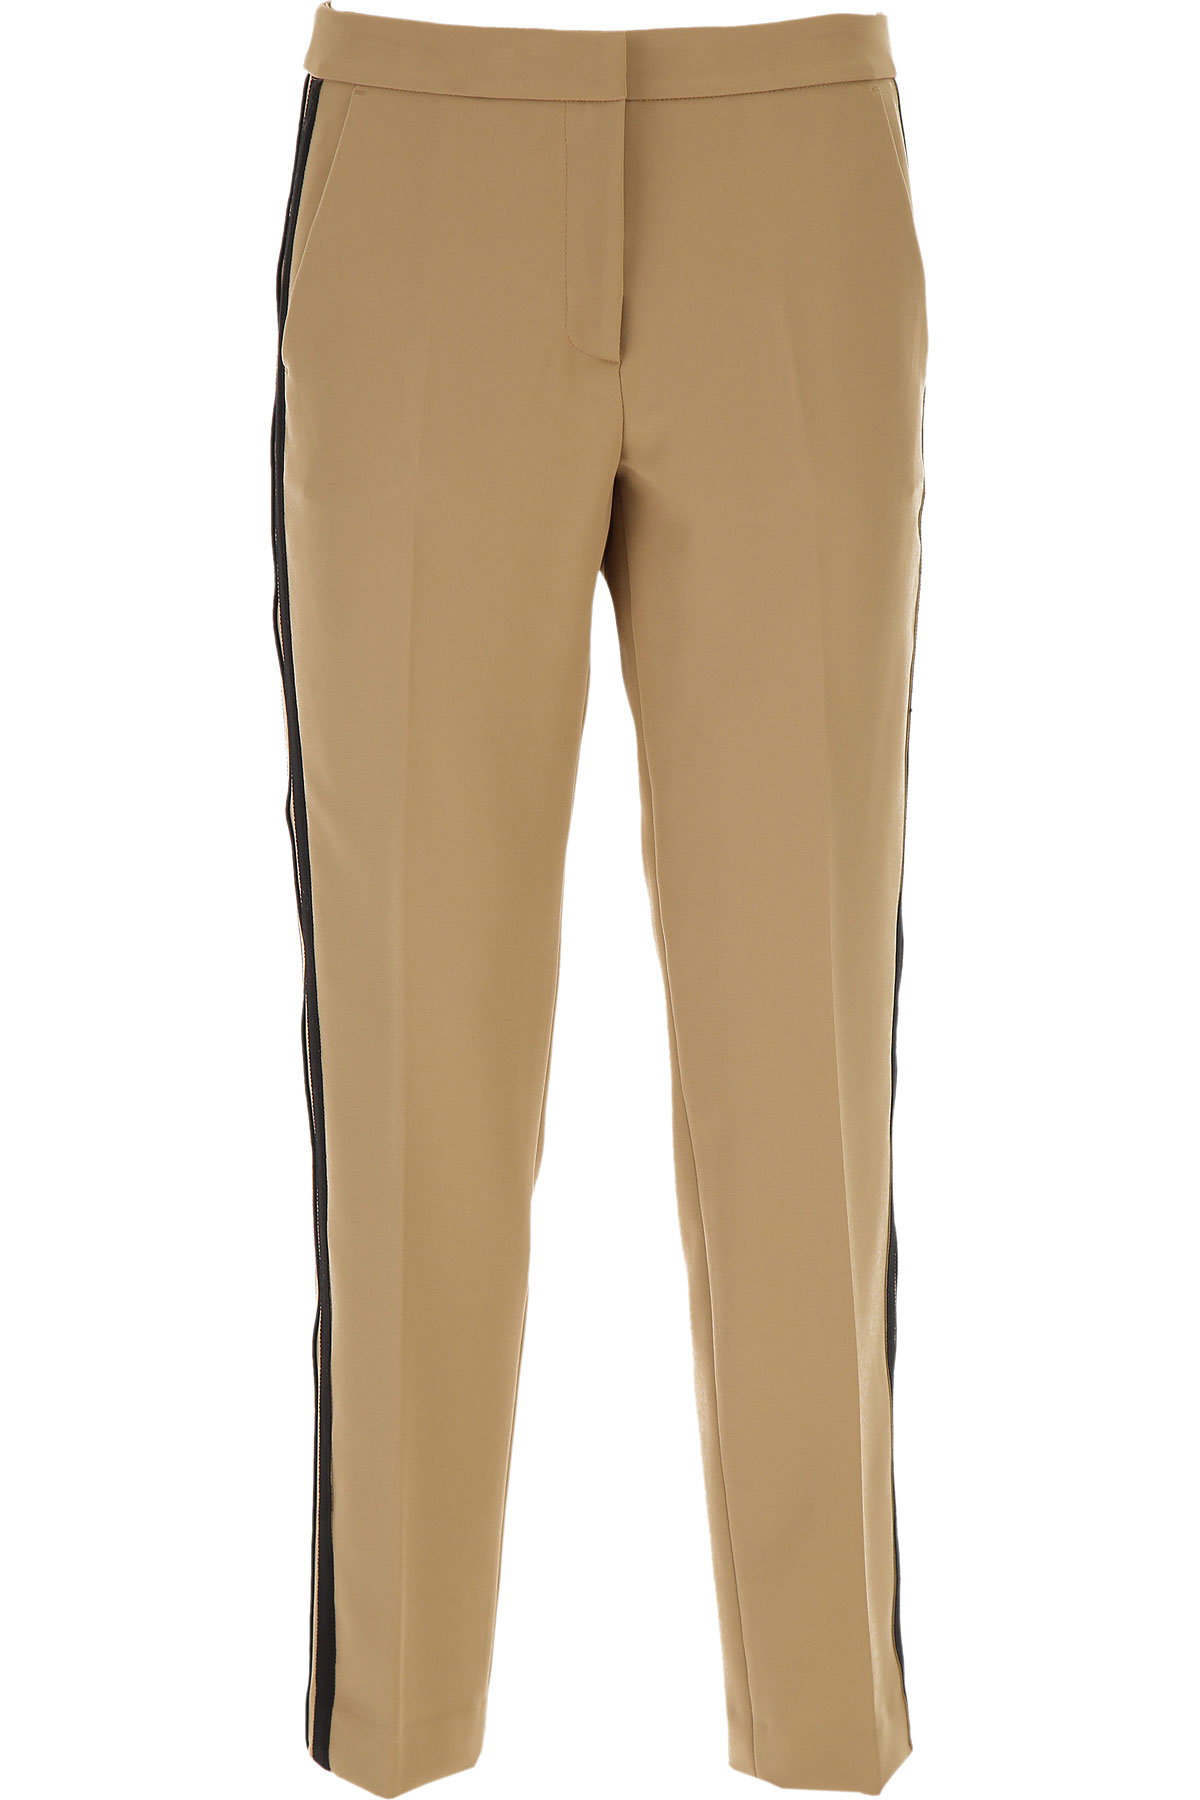 Ermanno Scervino Pants for Women On Sale, Biscuit, polyester, 2019, 4 6 8